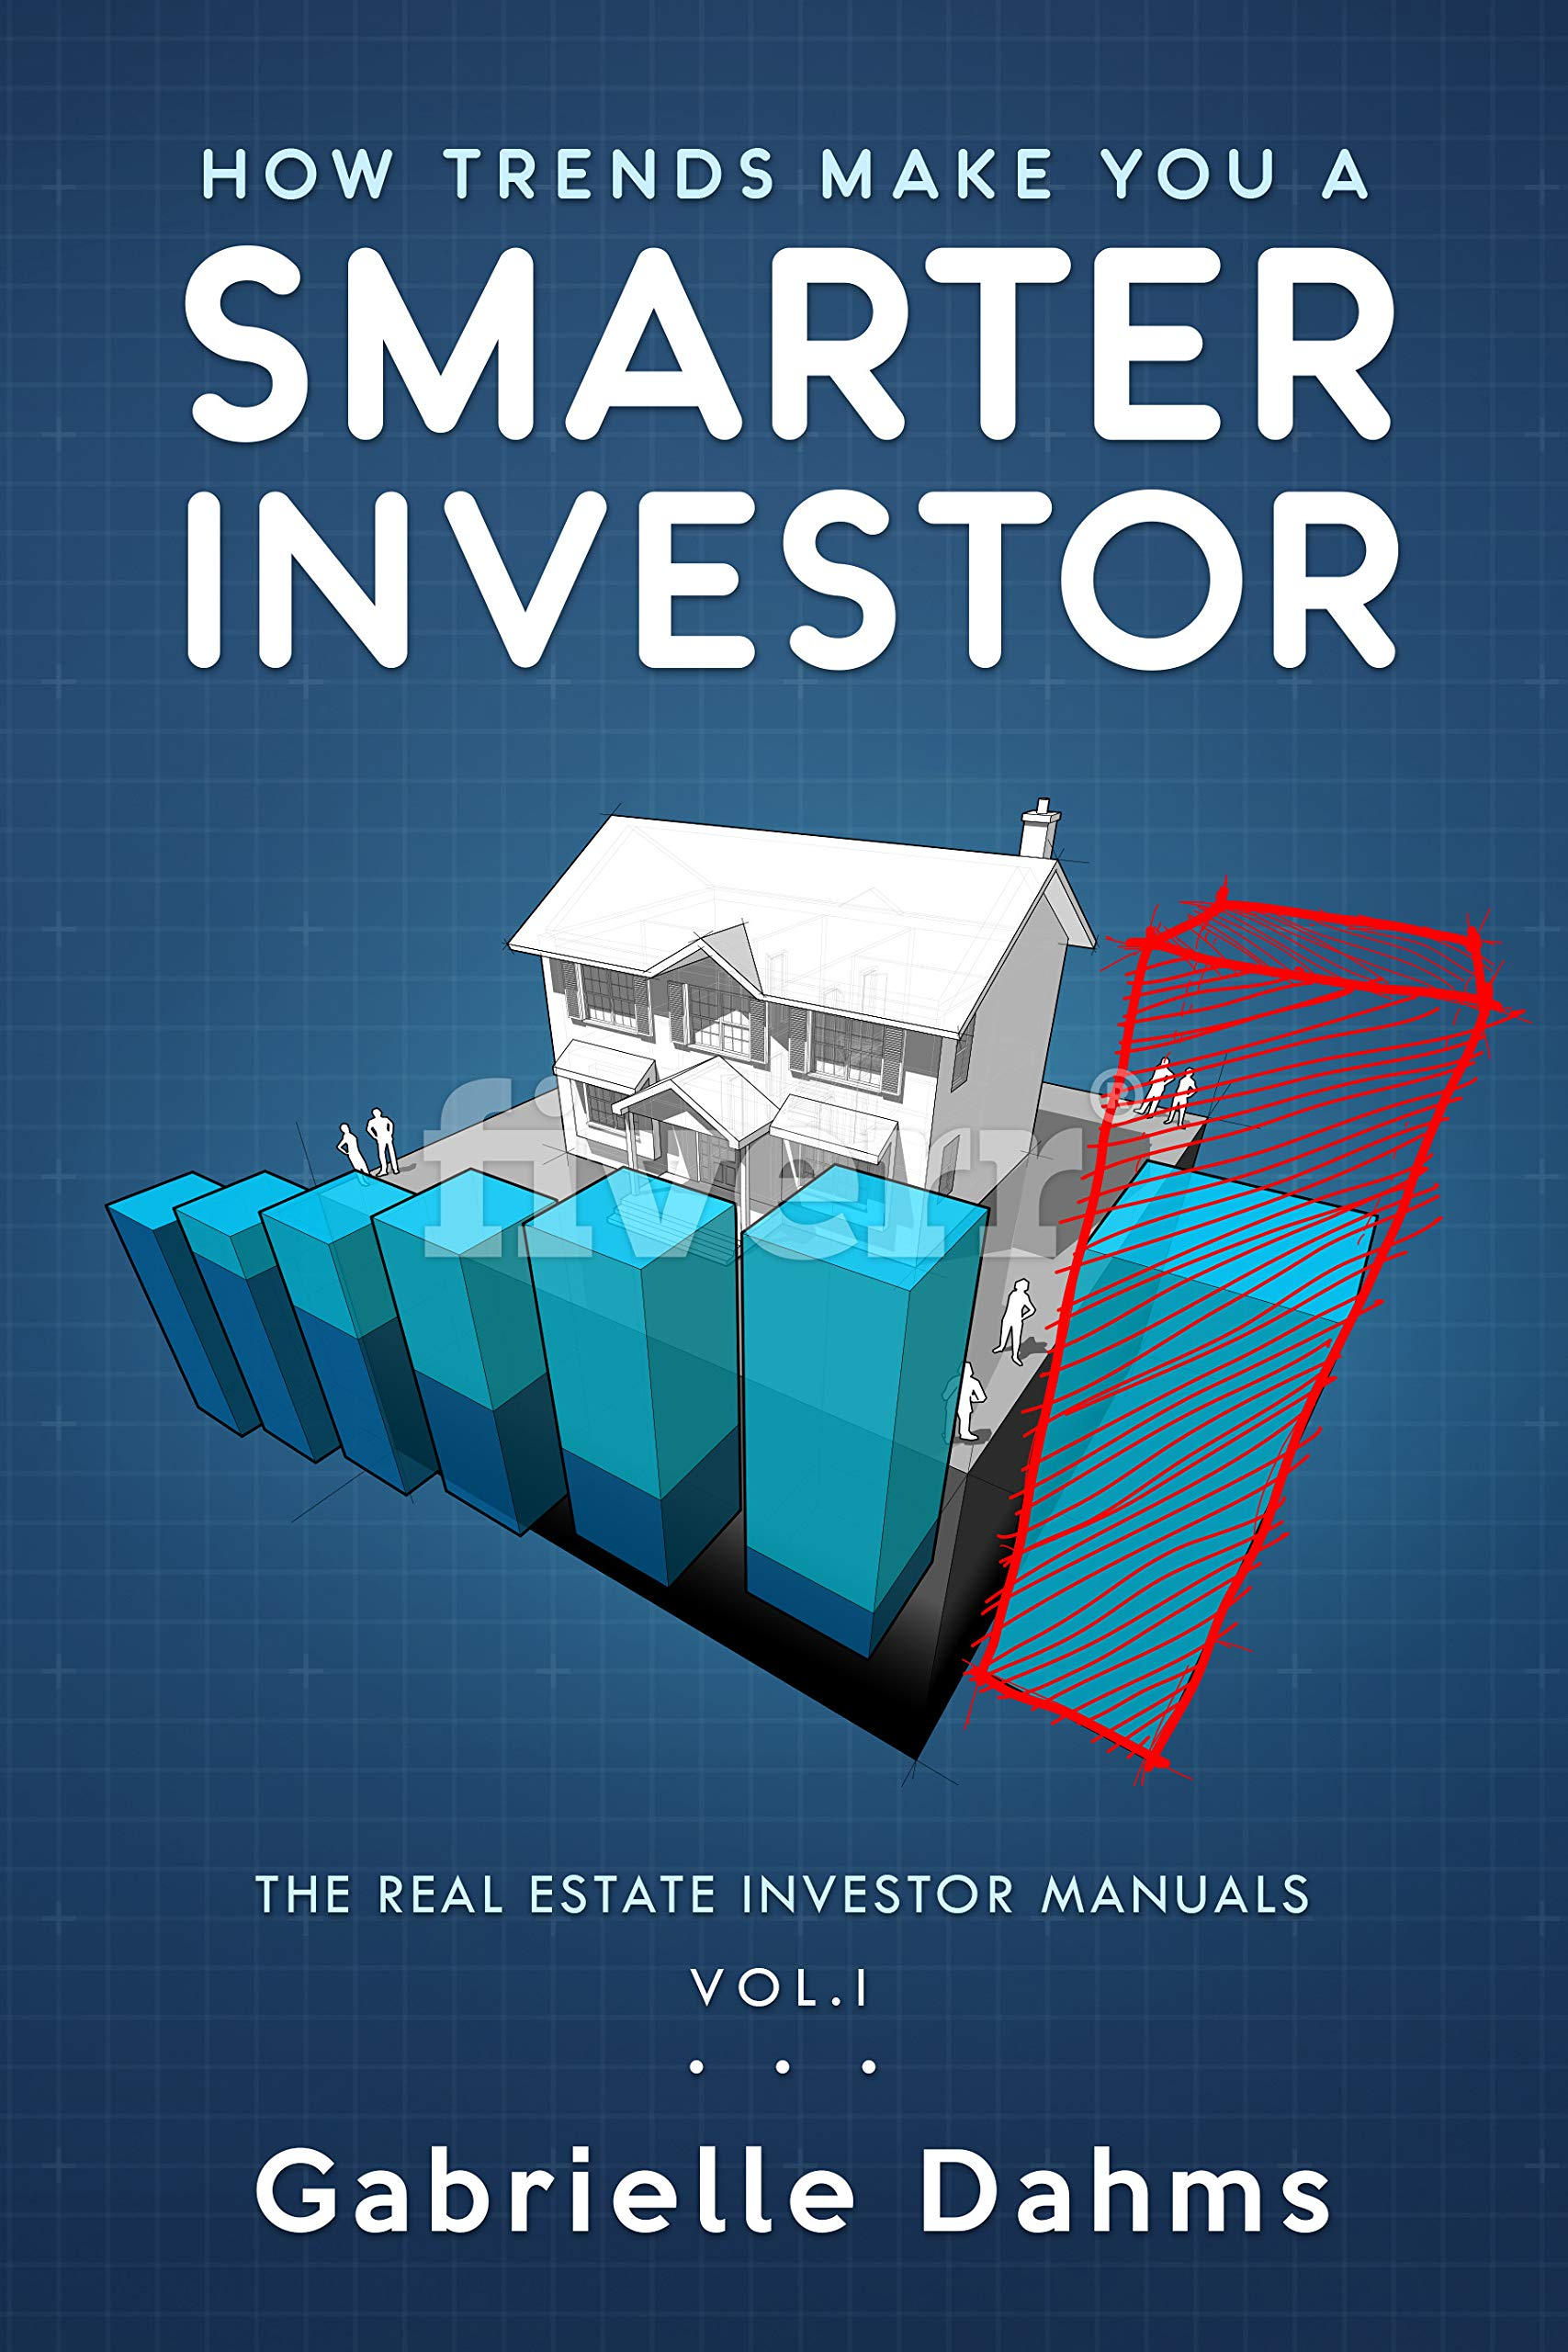 How Trends Make You A Smarter Investor: The Guide to Real Estate Investing Success (The Real Estate Investor Manuals Book 1)